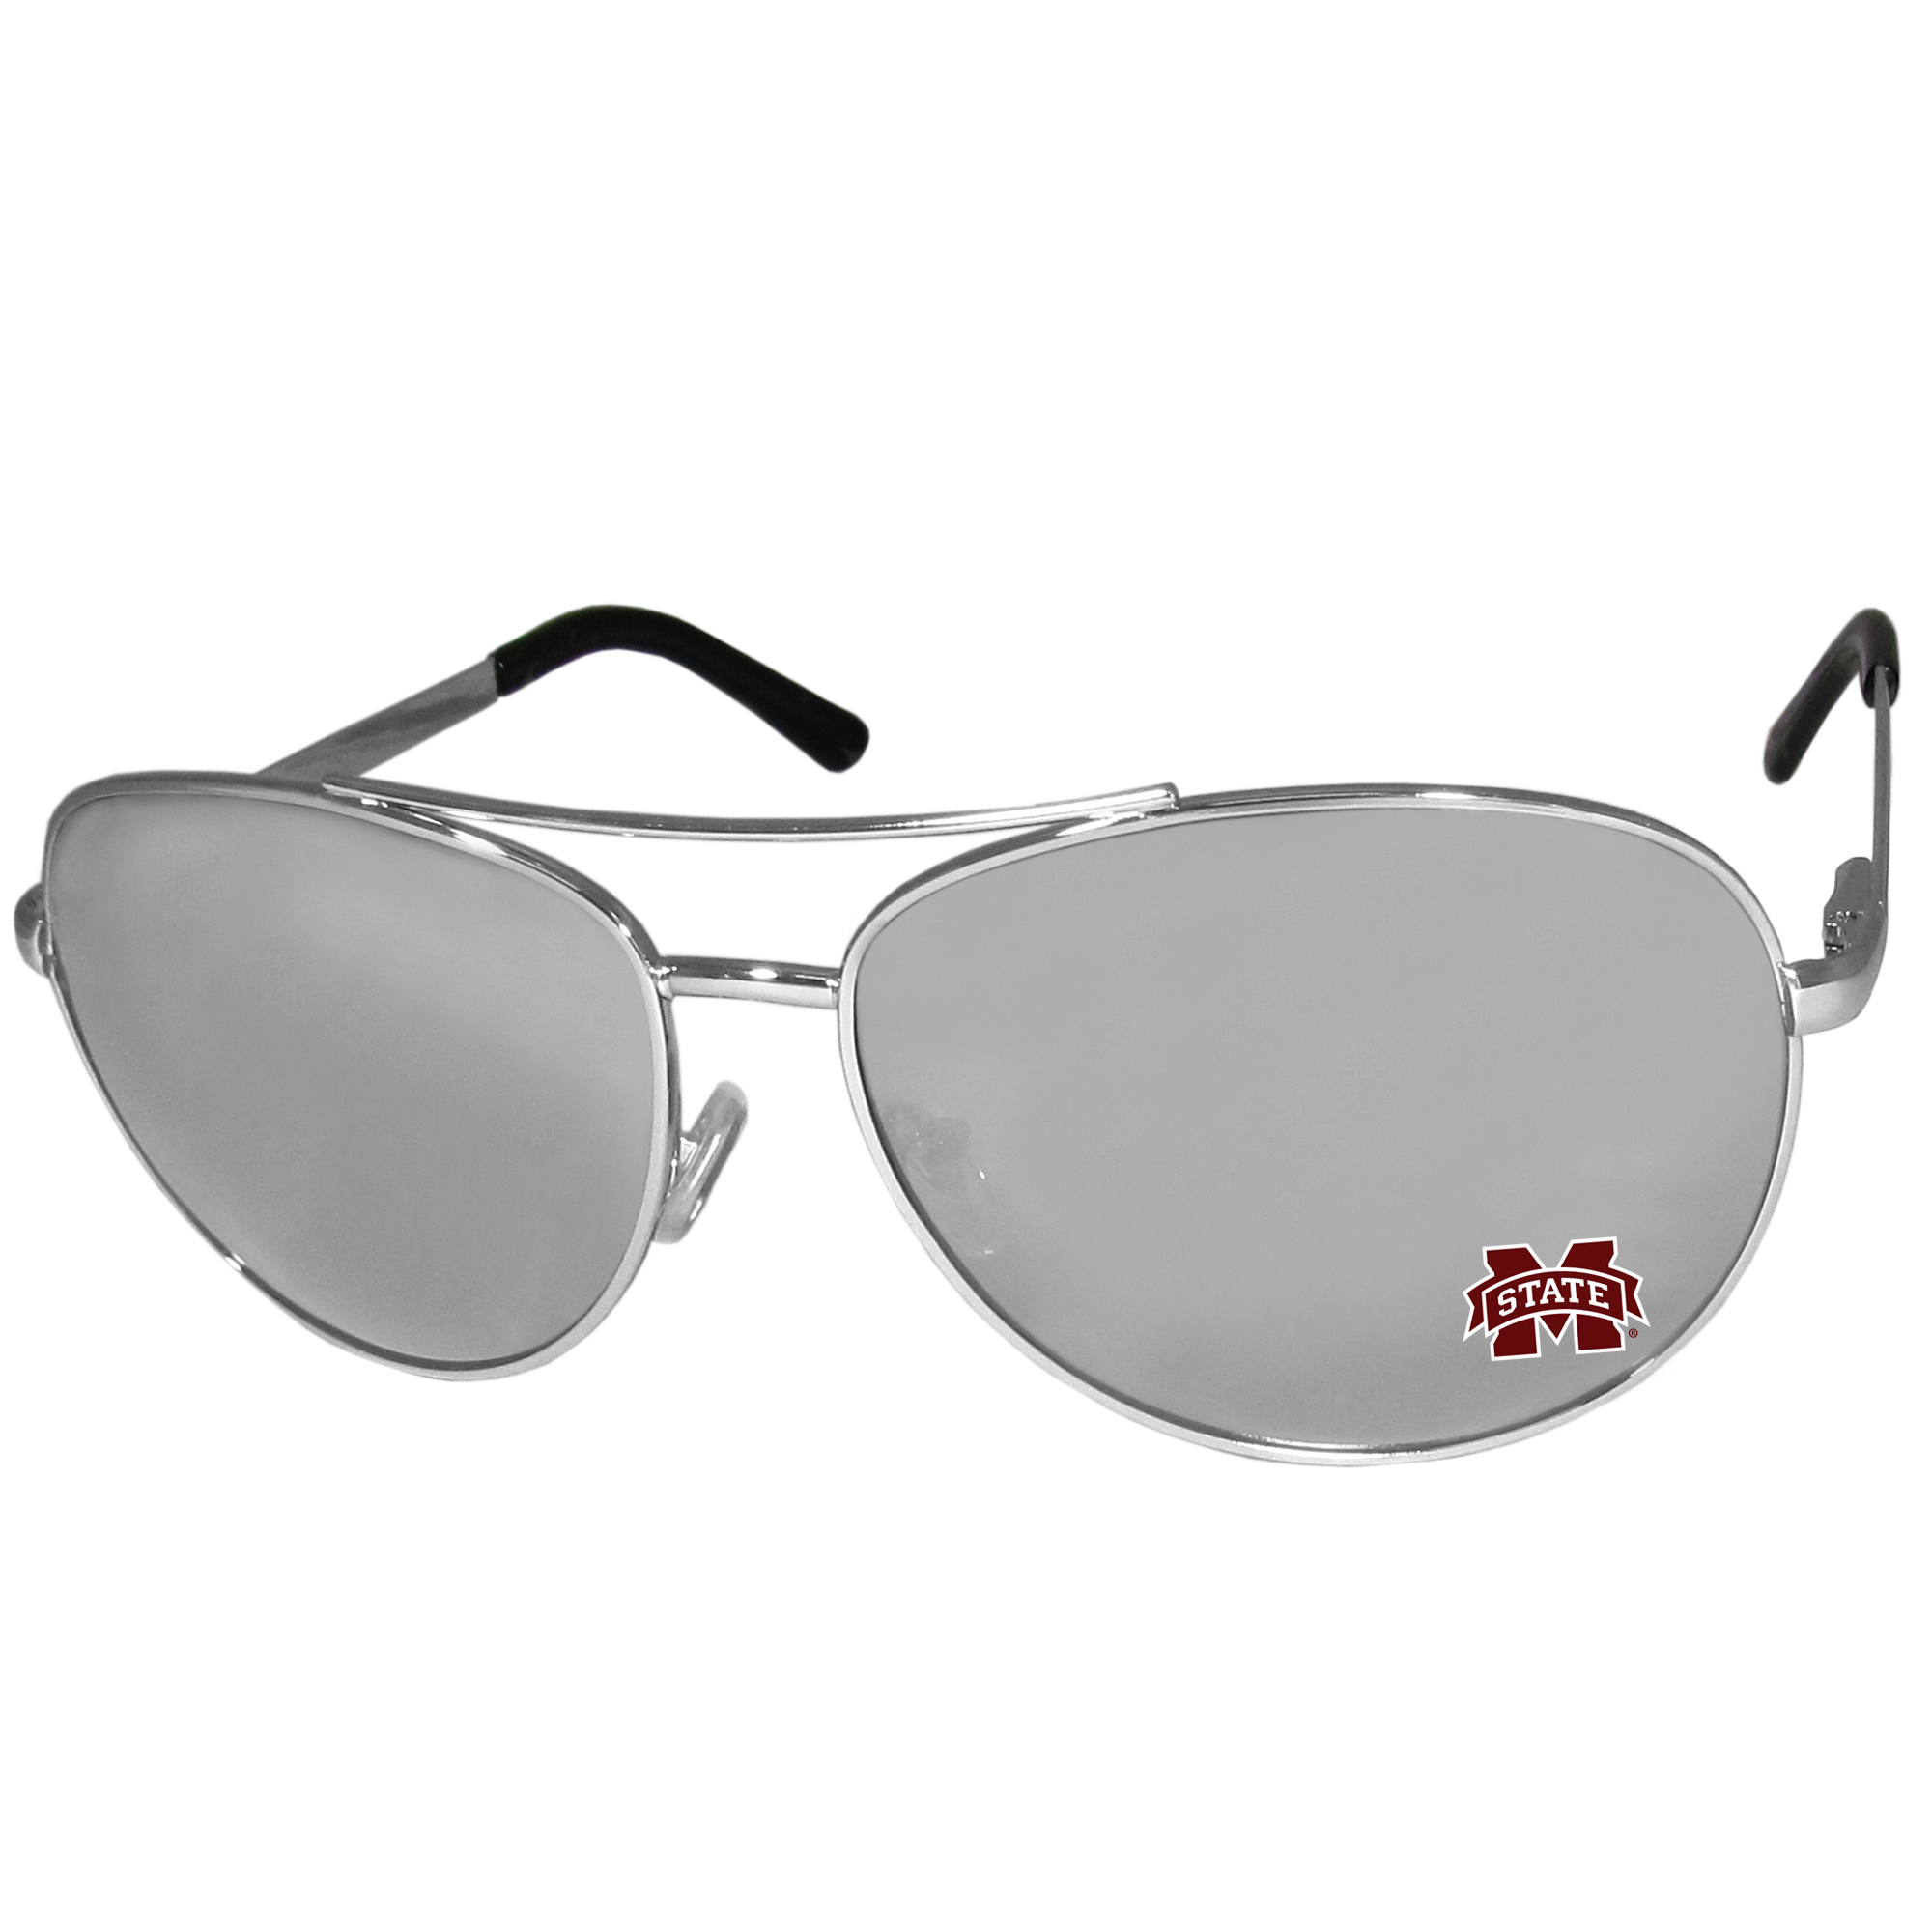 Mississippi St. Bulldogs Aviator Sunglasses - Our aviator sunglasses have the iconic aviator style with mirrored lenses and metal frames. The glasses feature a silk screened Mississippi St. Bulldogs logo in the corner of the lense. 100% UVA/UVB protection.